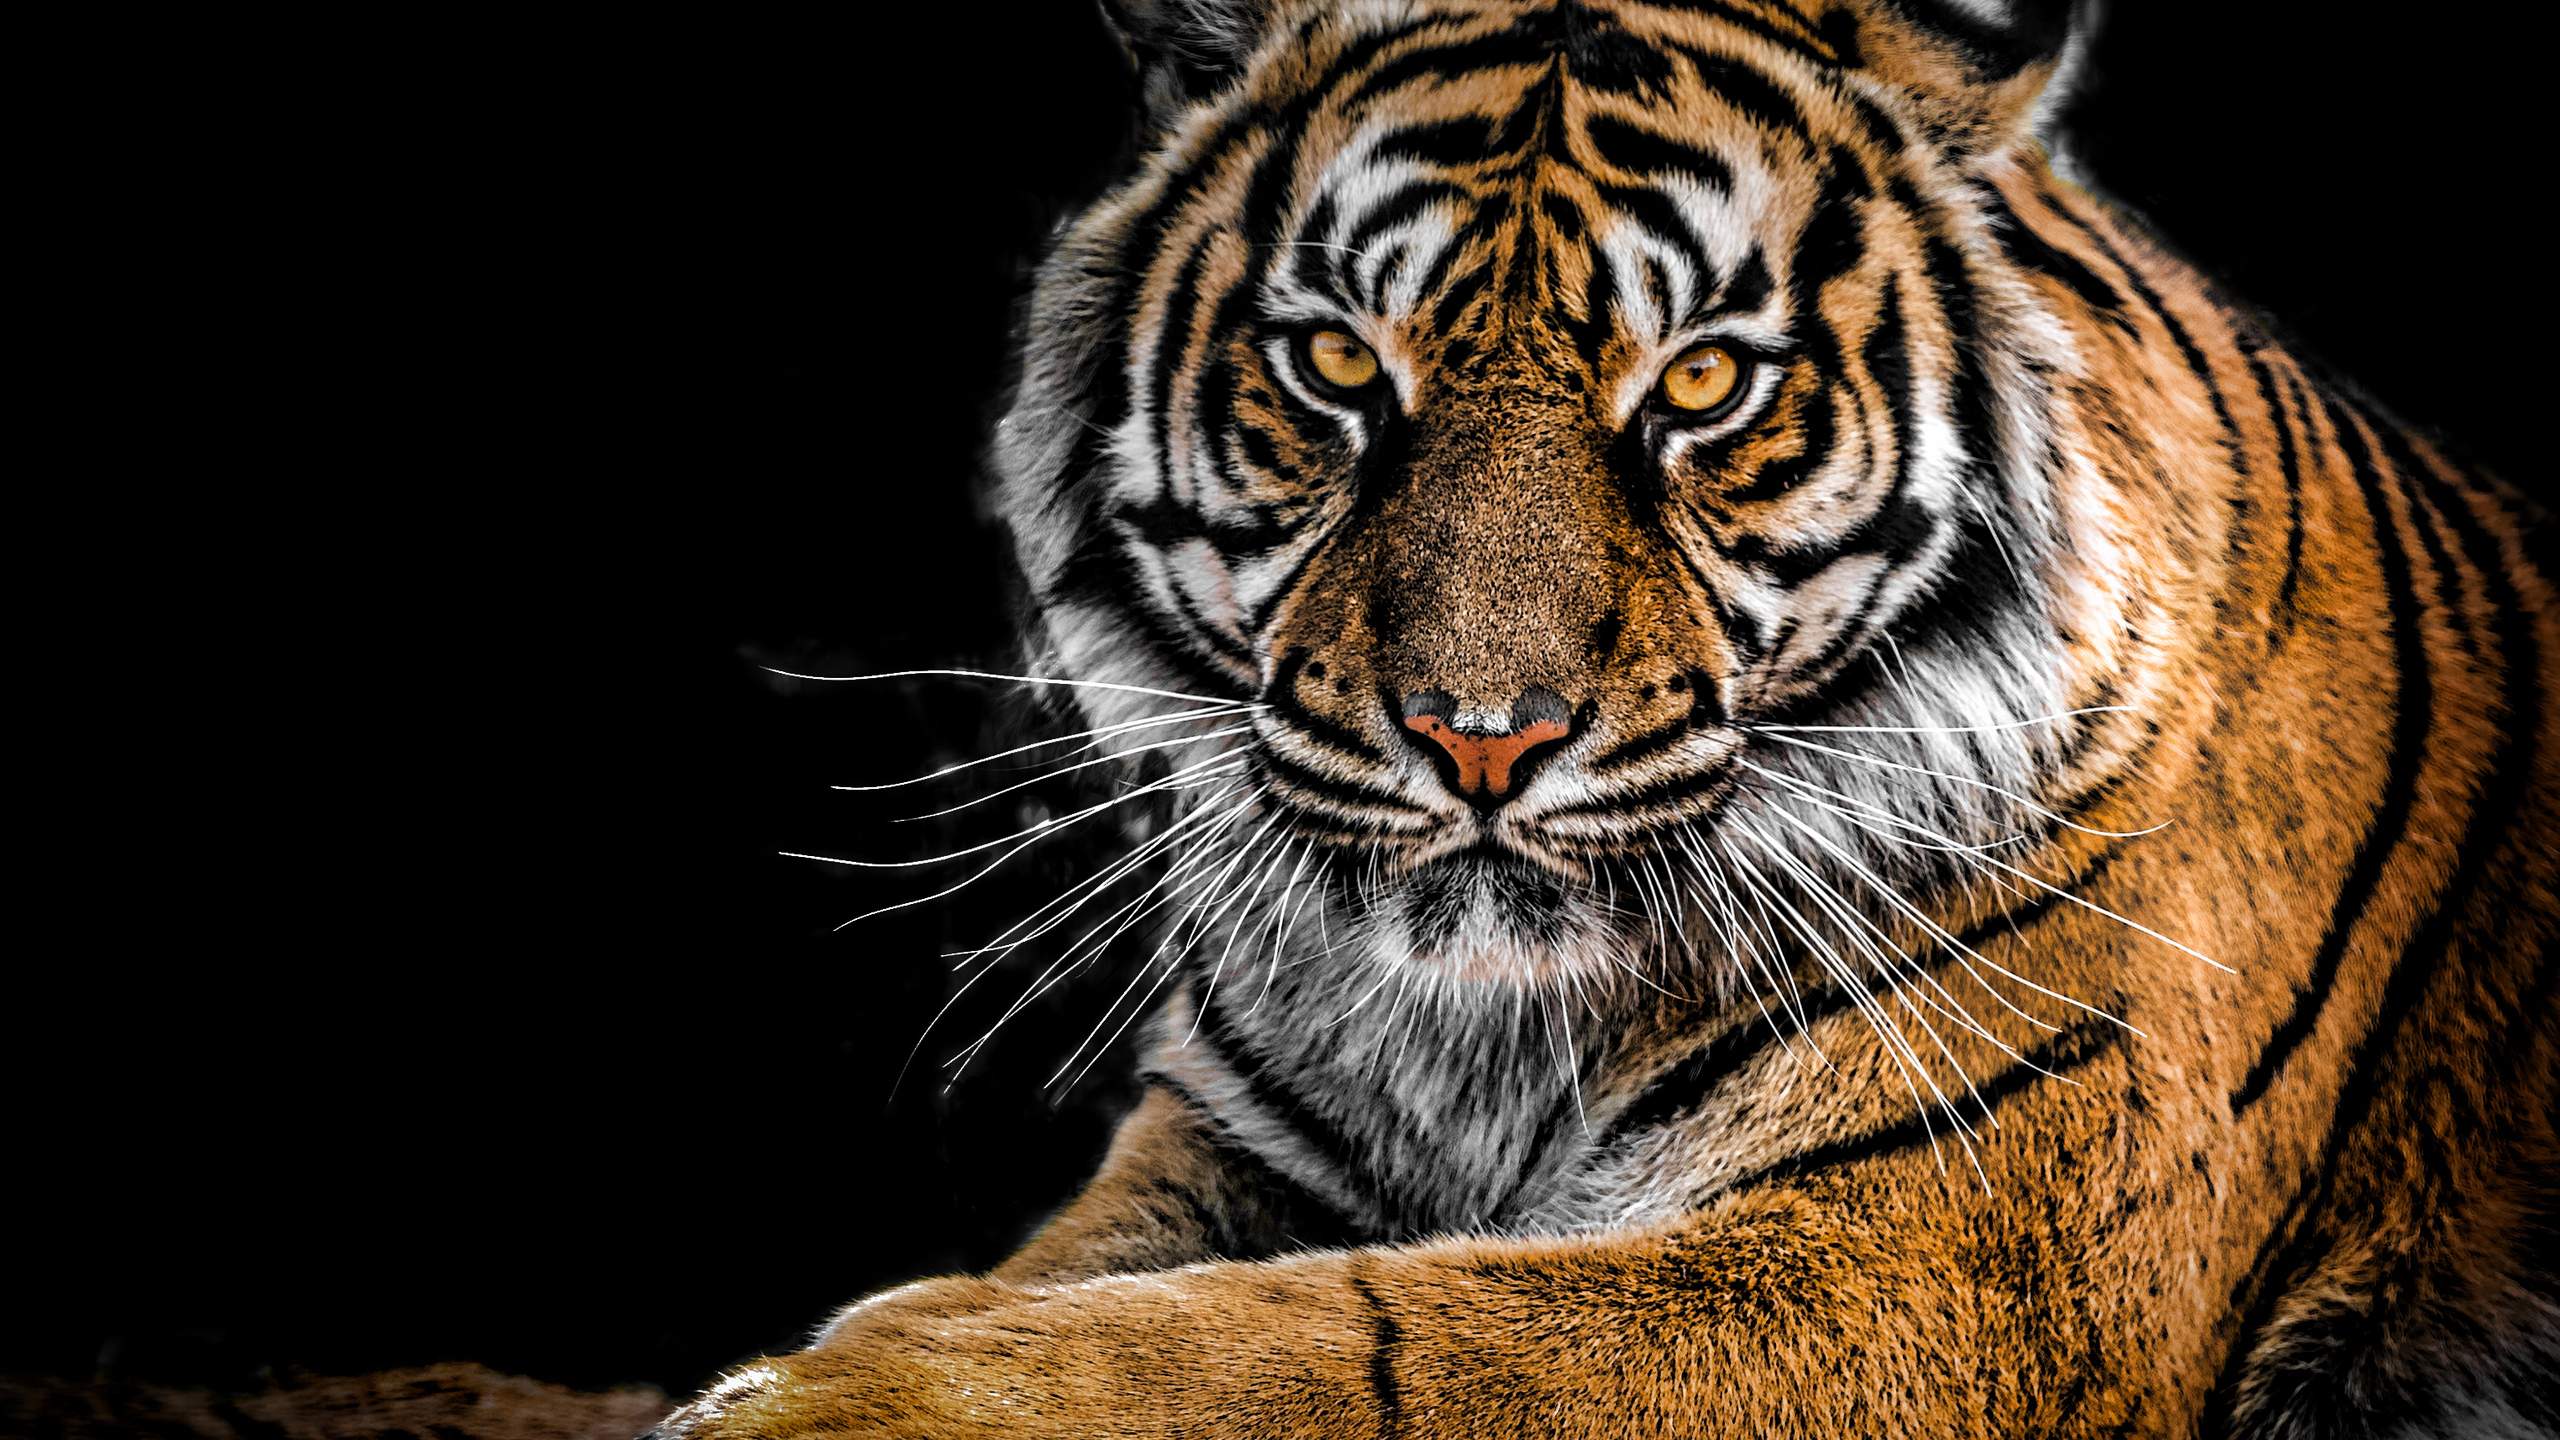 2560x1440 Tiger Closeup 1440P Resolution HD 4k Wallpapers